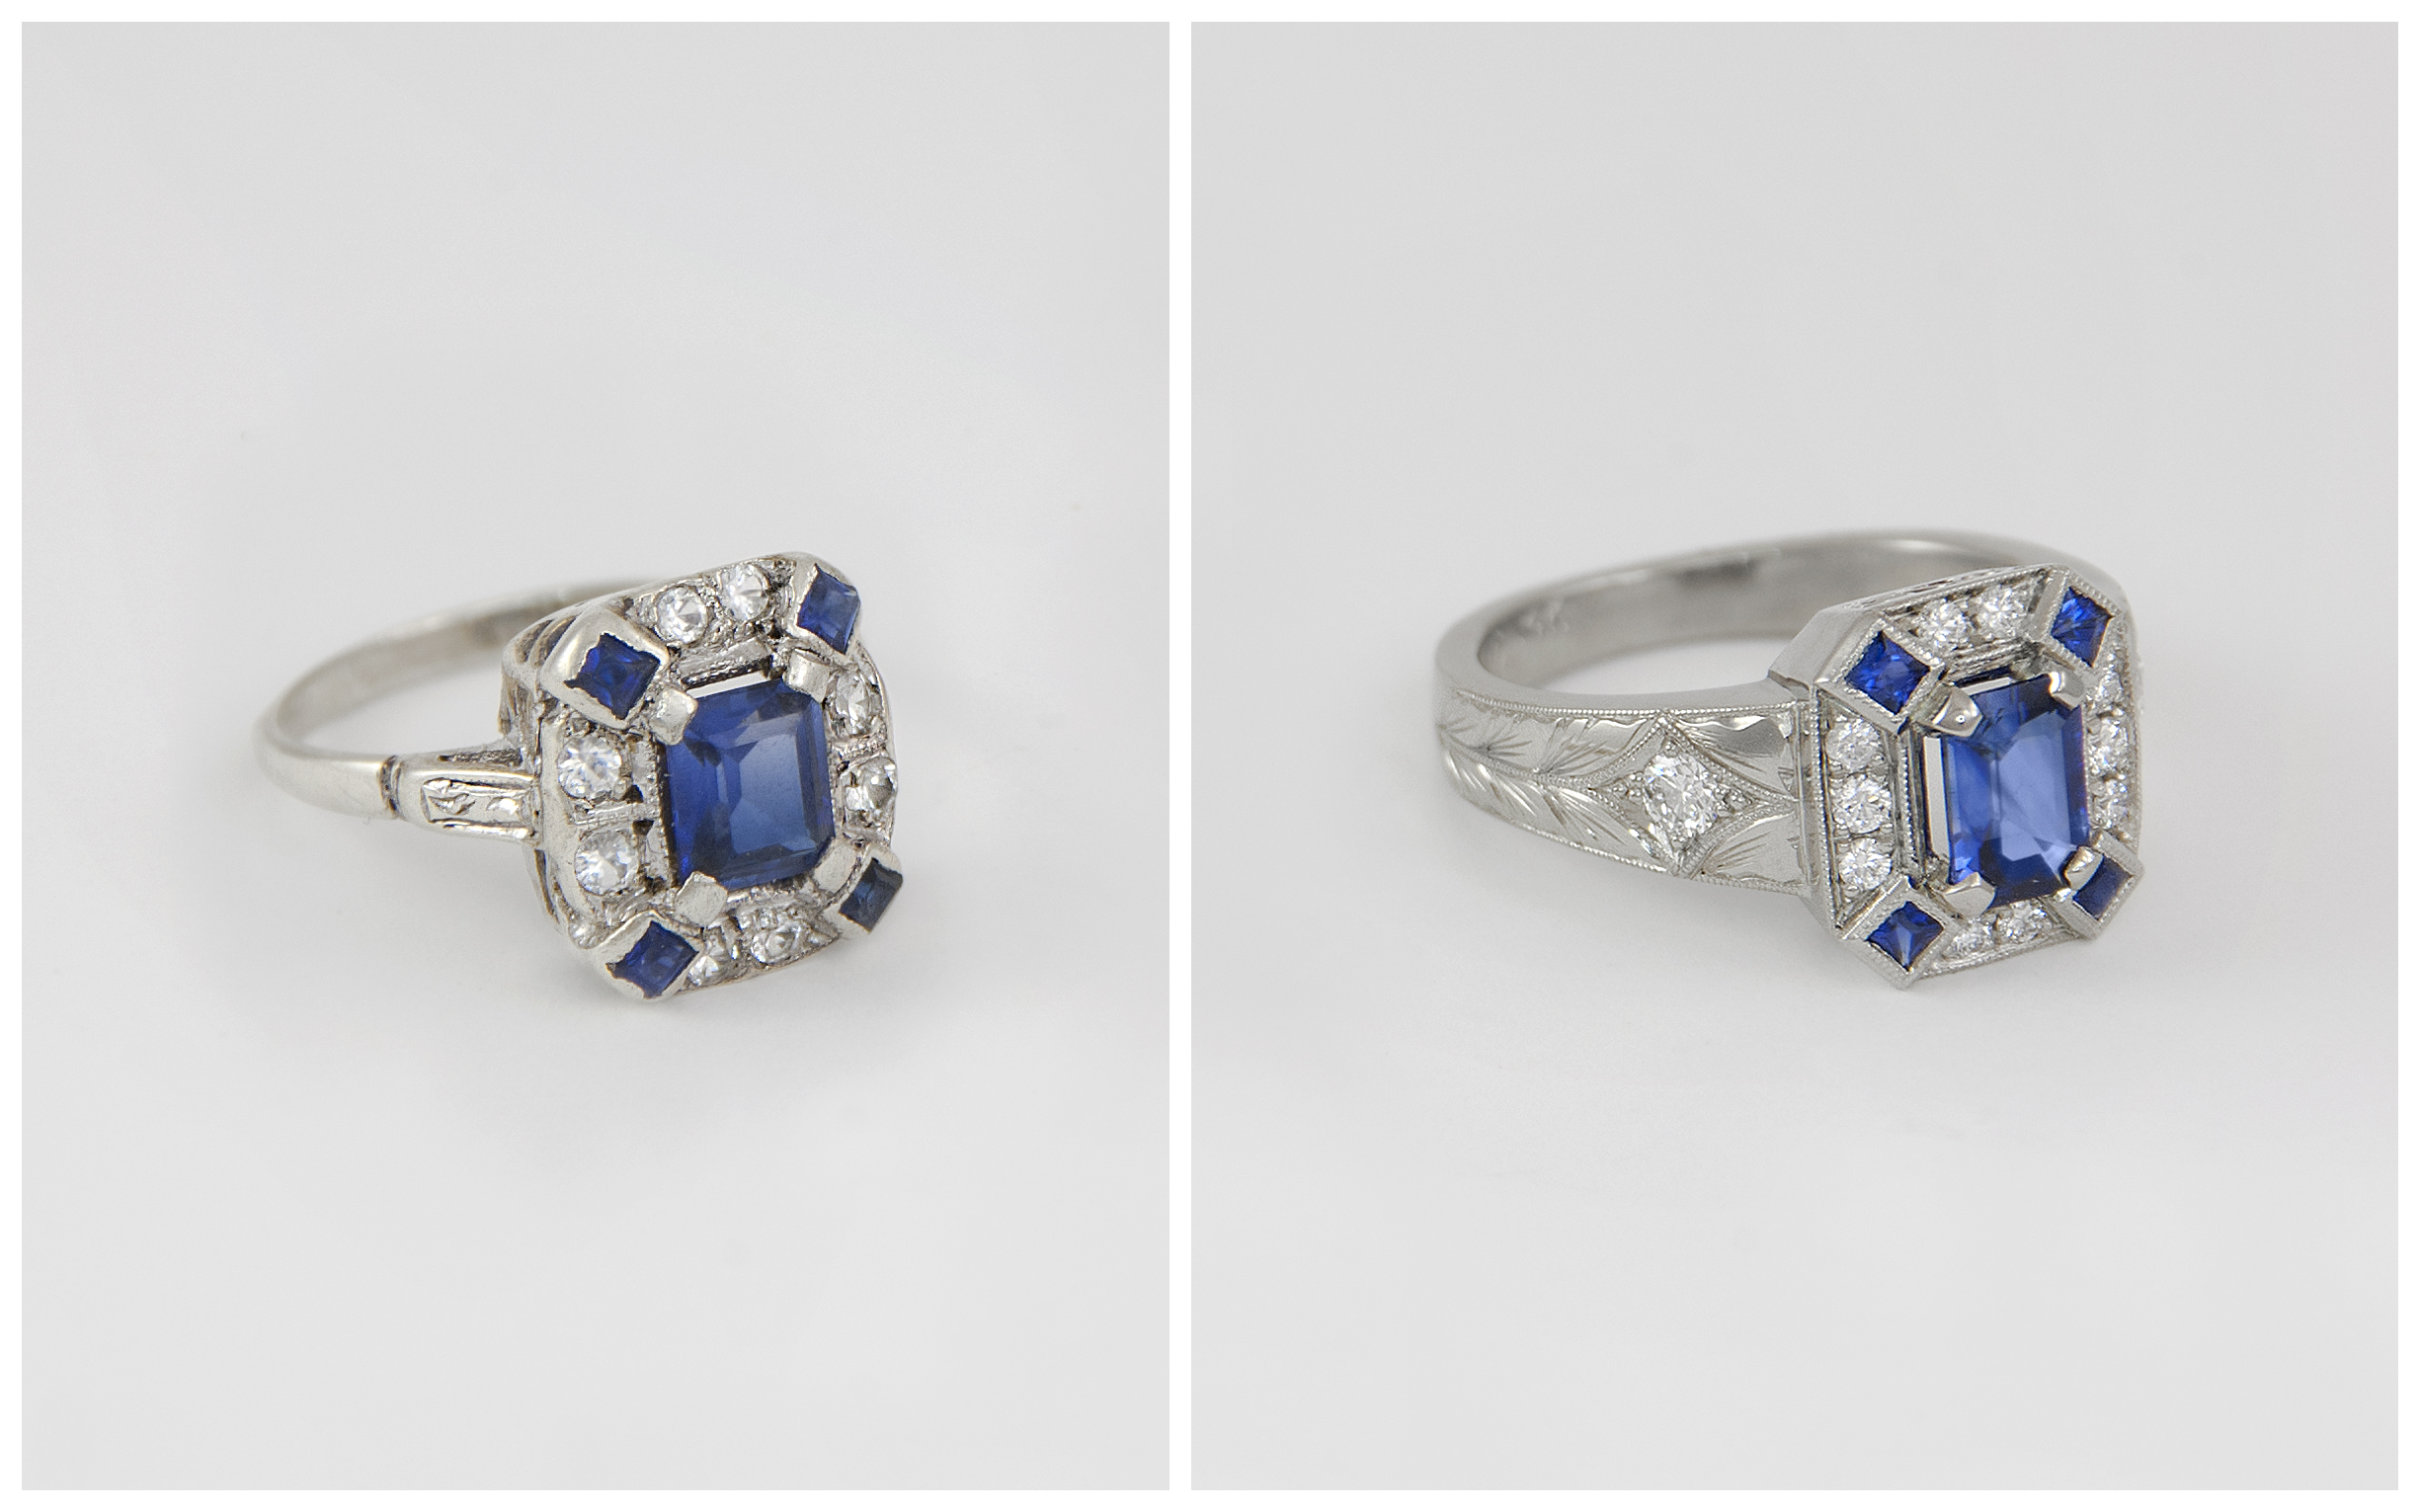 Emerald Cut Sapphire Vintage Inspired Ring B&A